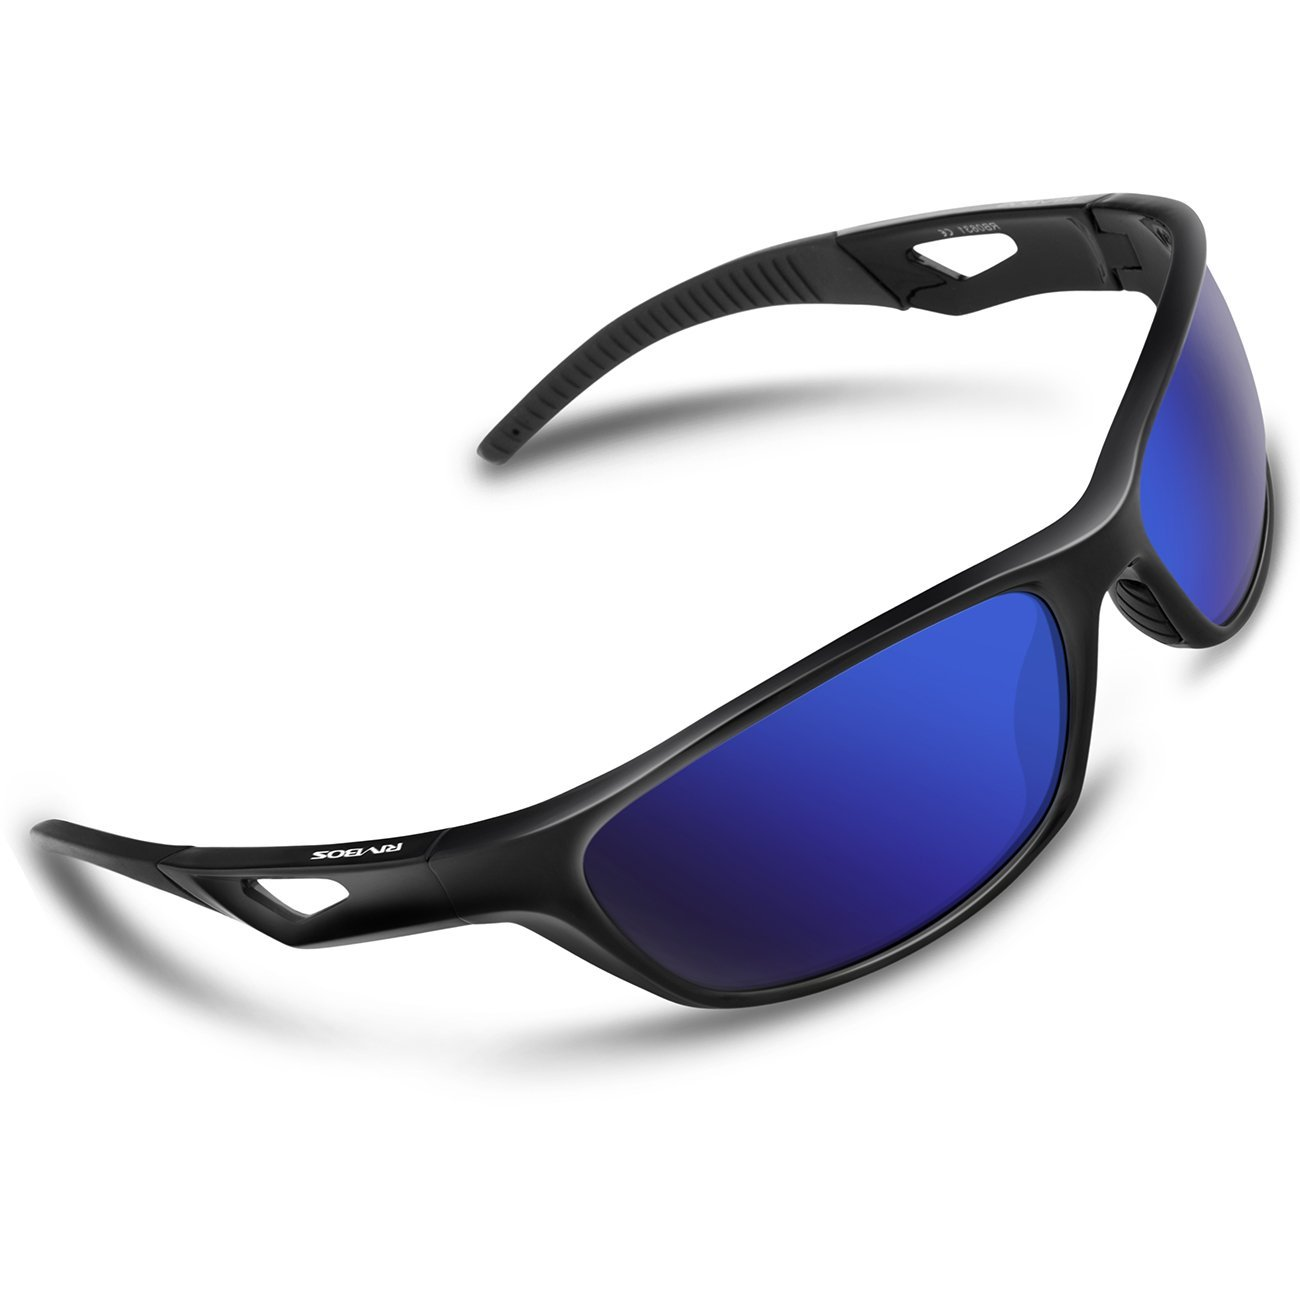 RIVBOS Polarized Sports Sunglasses Driving Sun Glasses For Men Women TR 90 Unbreakable Frame For Cyc...